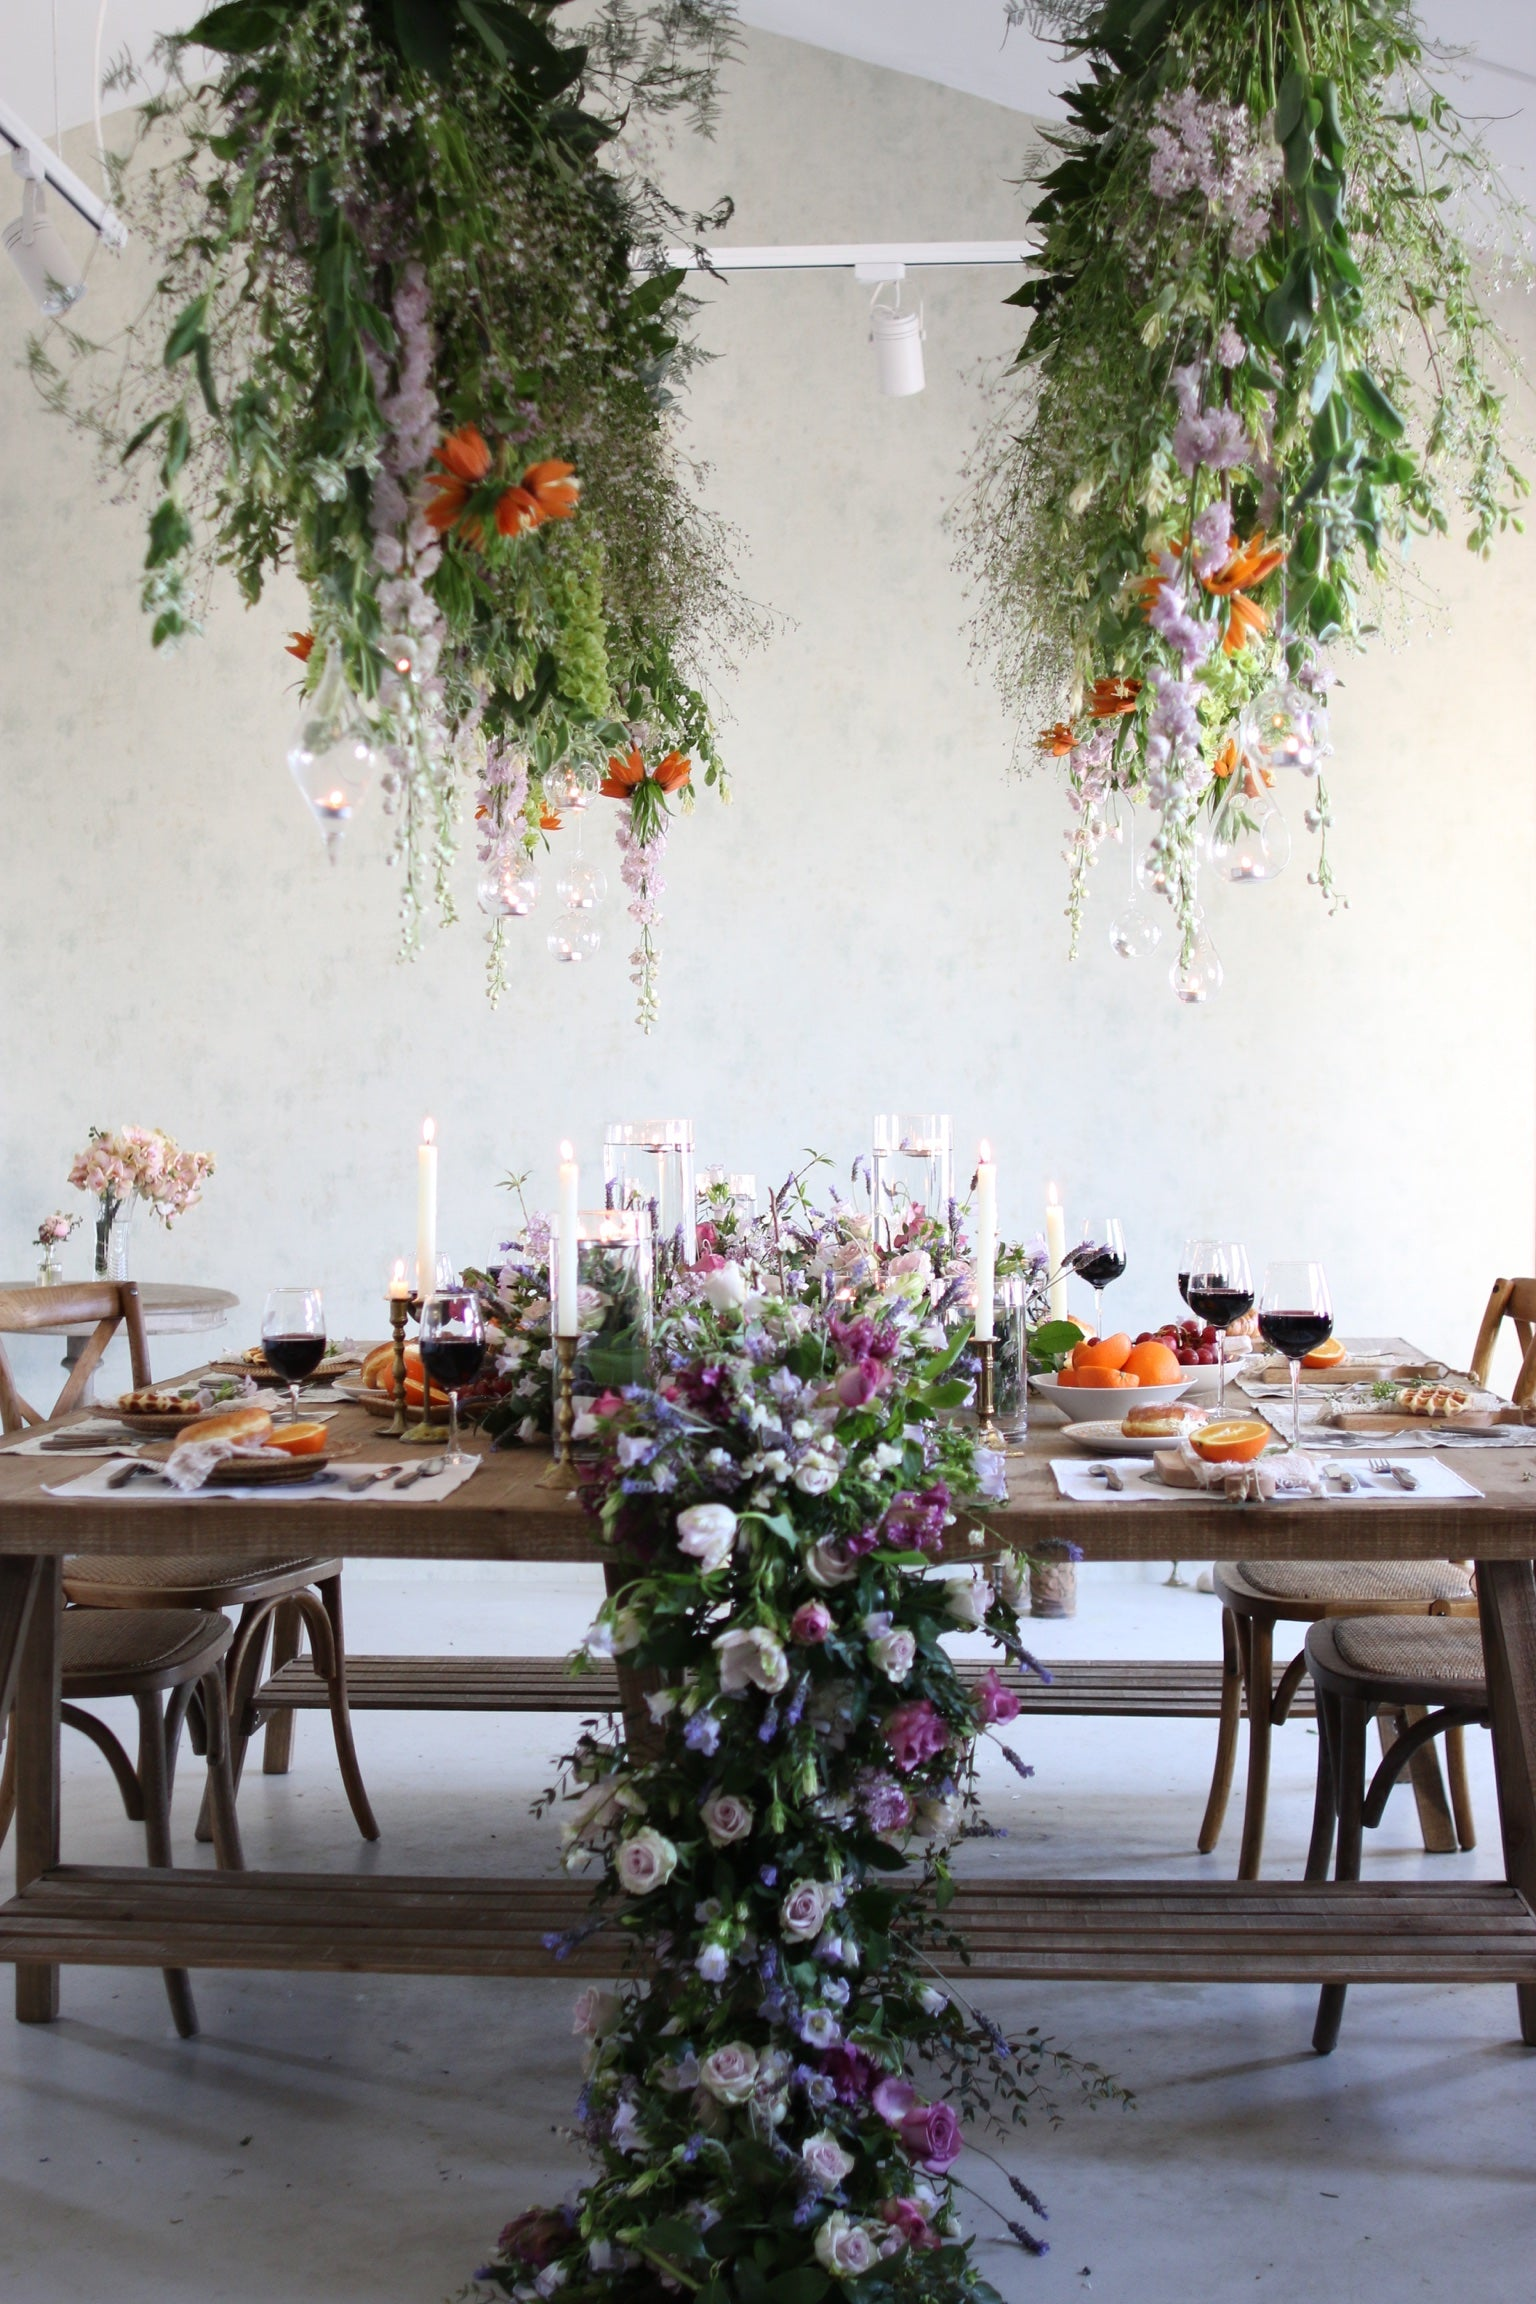 Wedding Floral Design Workshop and Wedding Decoration, June 26 - 27